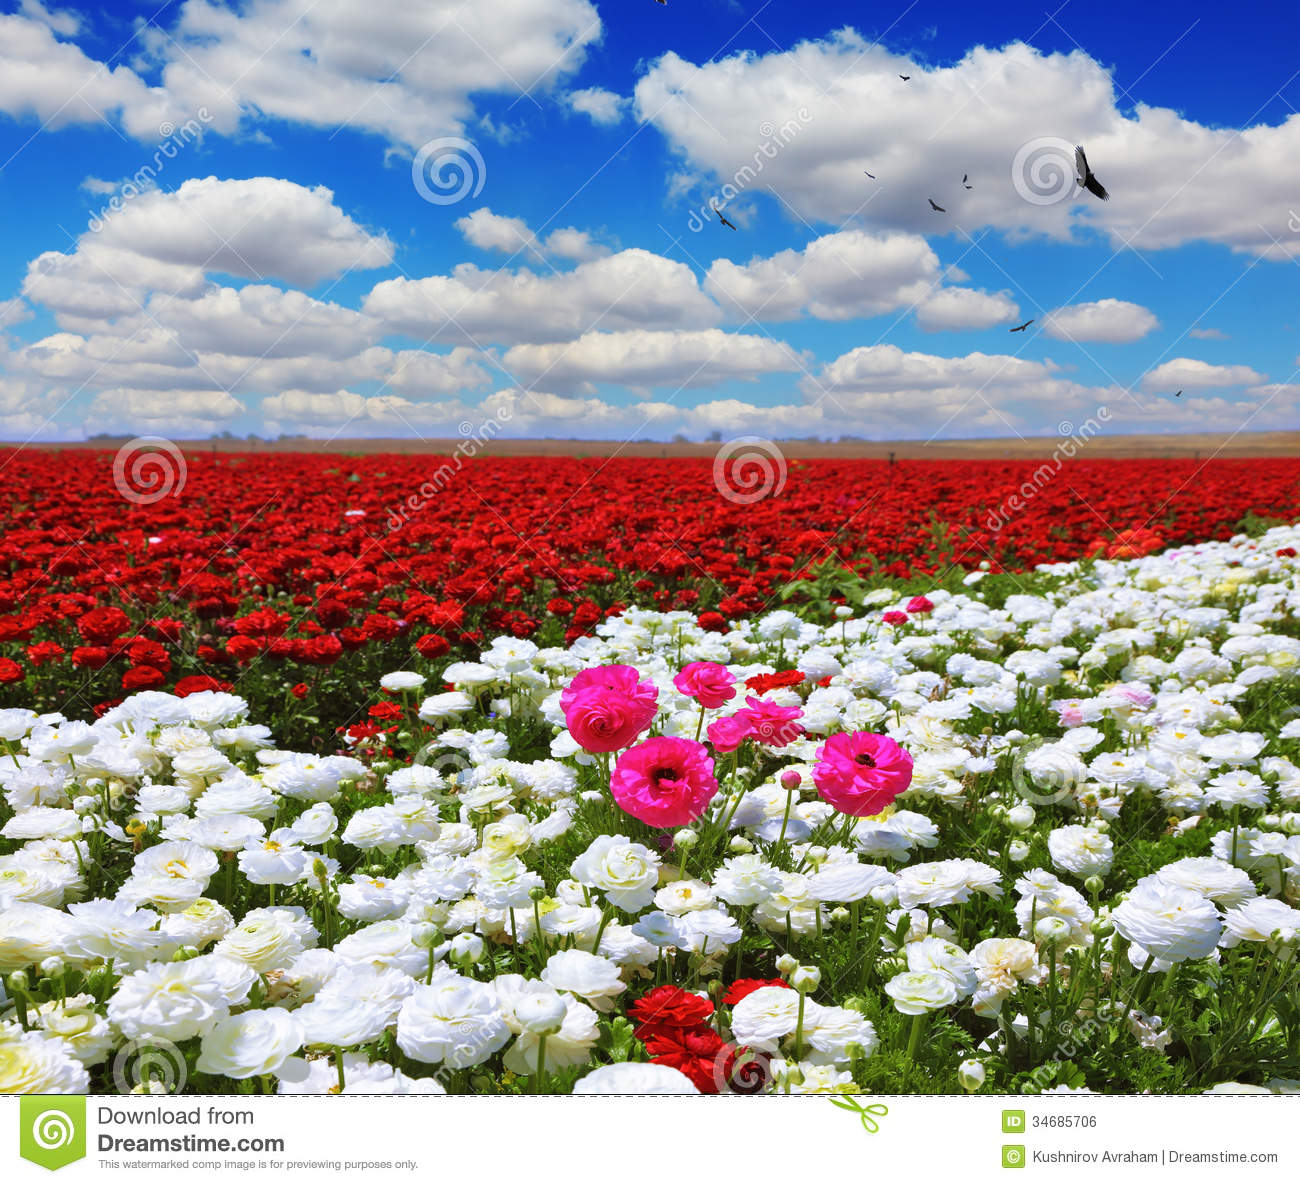 bright red flowers field - photo #46